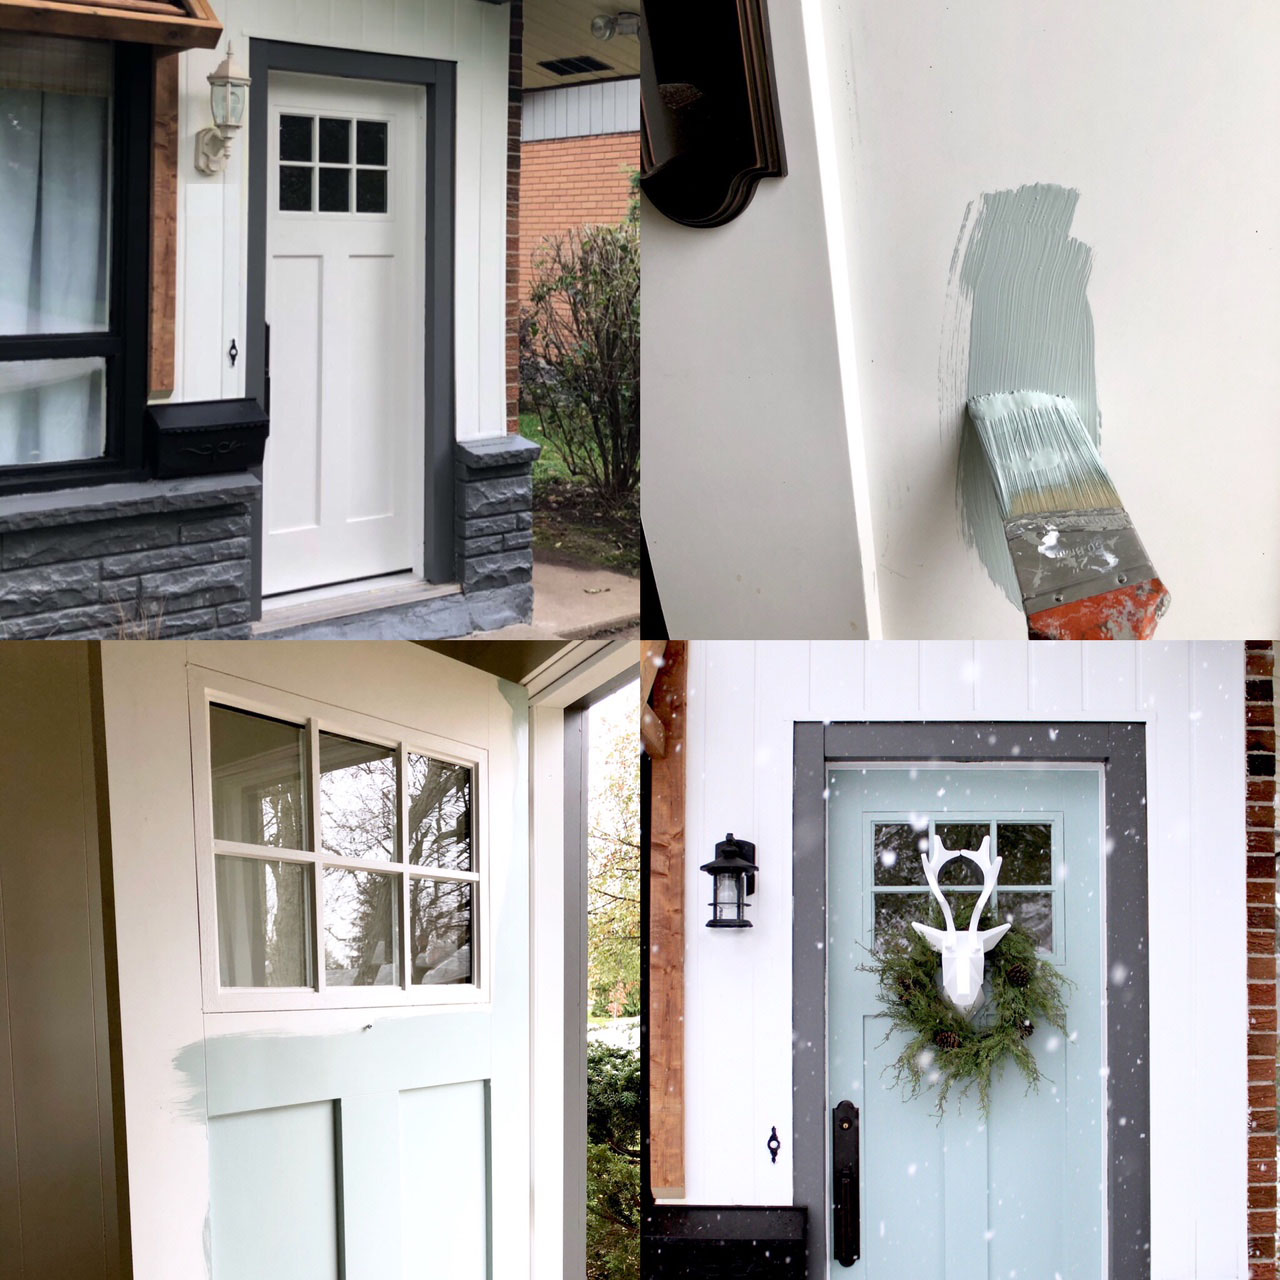 Unique-Christmas-front-door-decorations-harlow-and-thistle-5